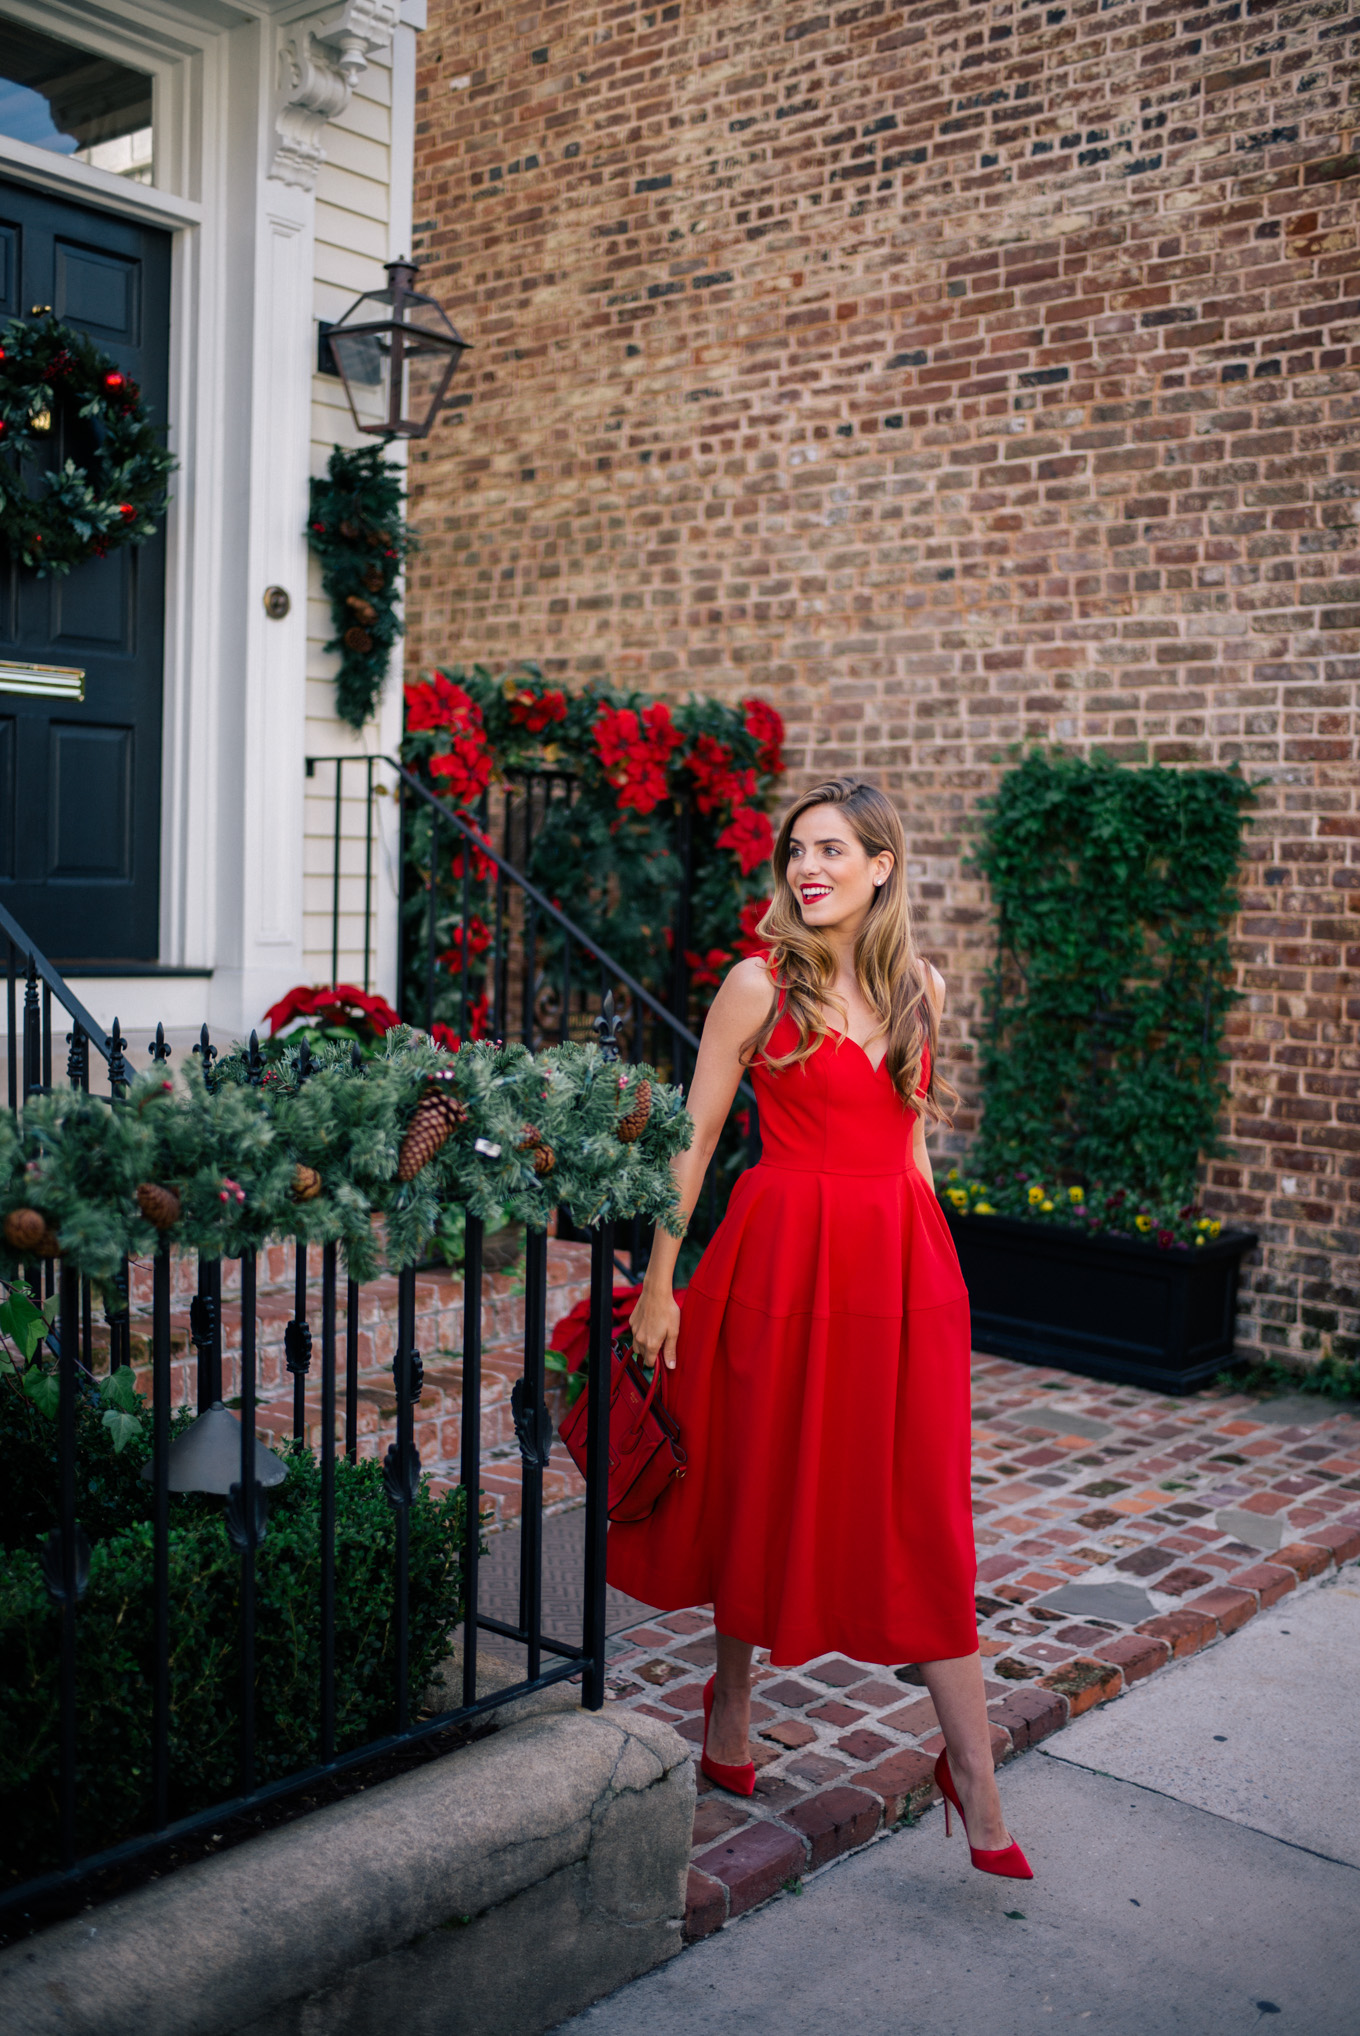 gmg-holiday-red-dress-1000365